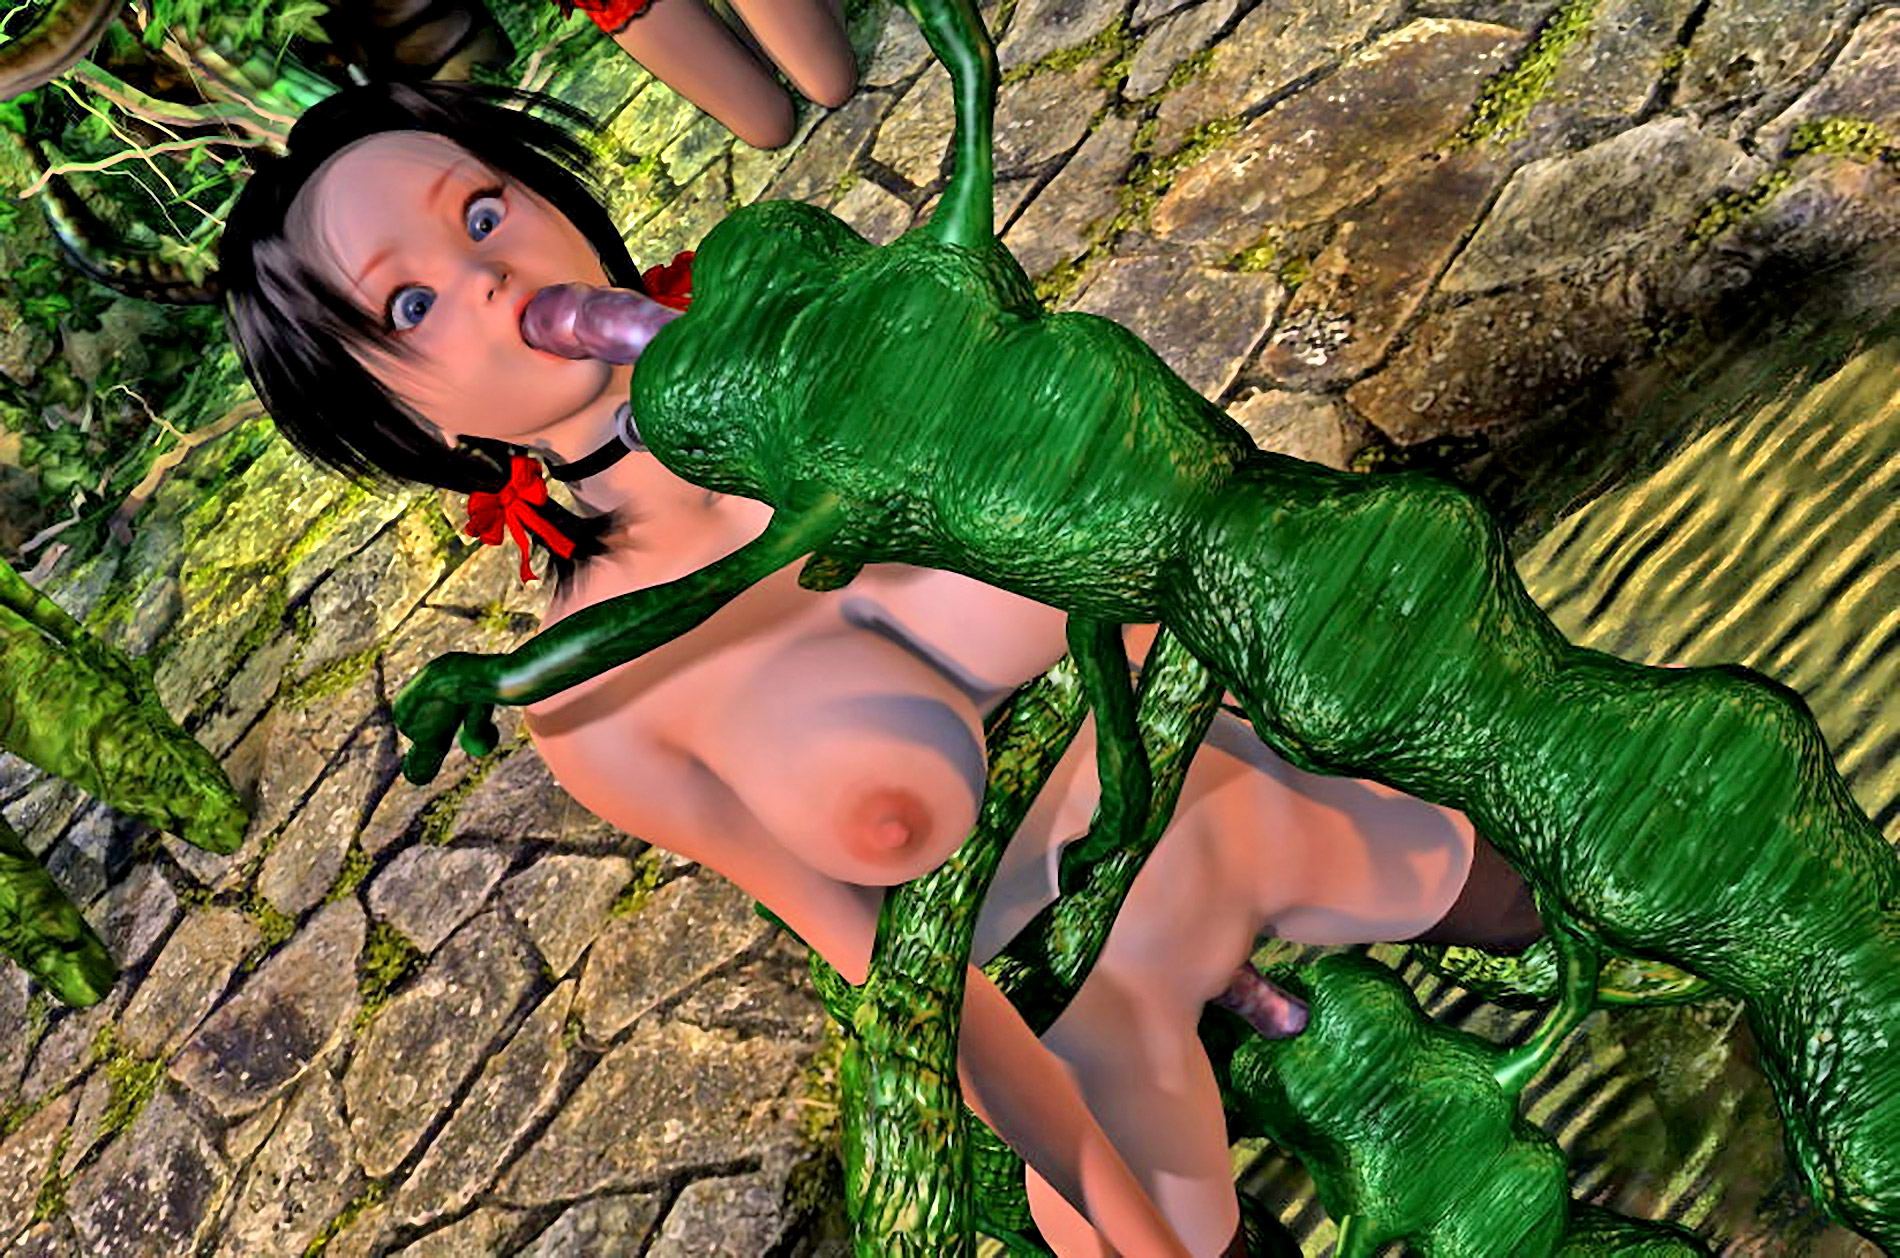 Tomb raider monsters porn erotic image